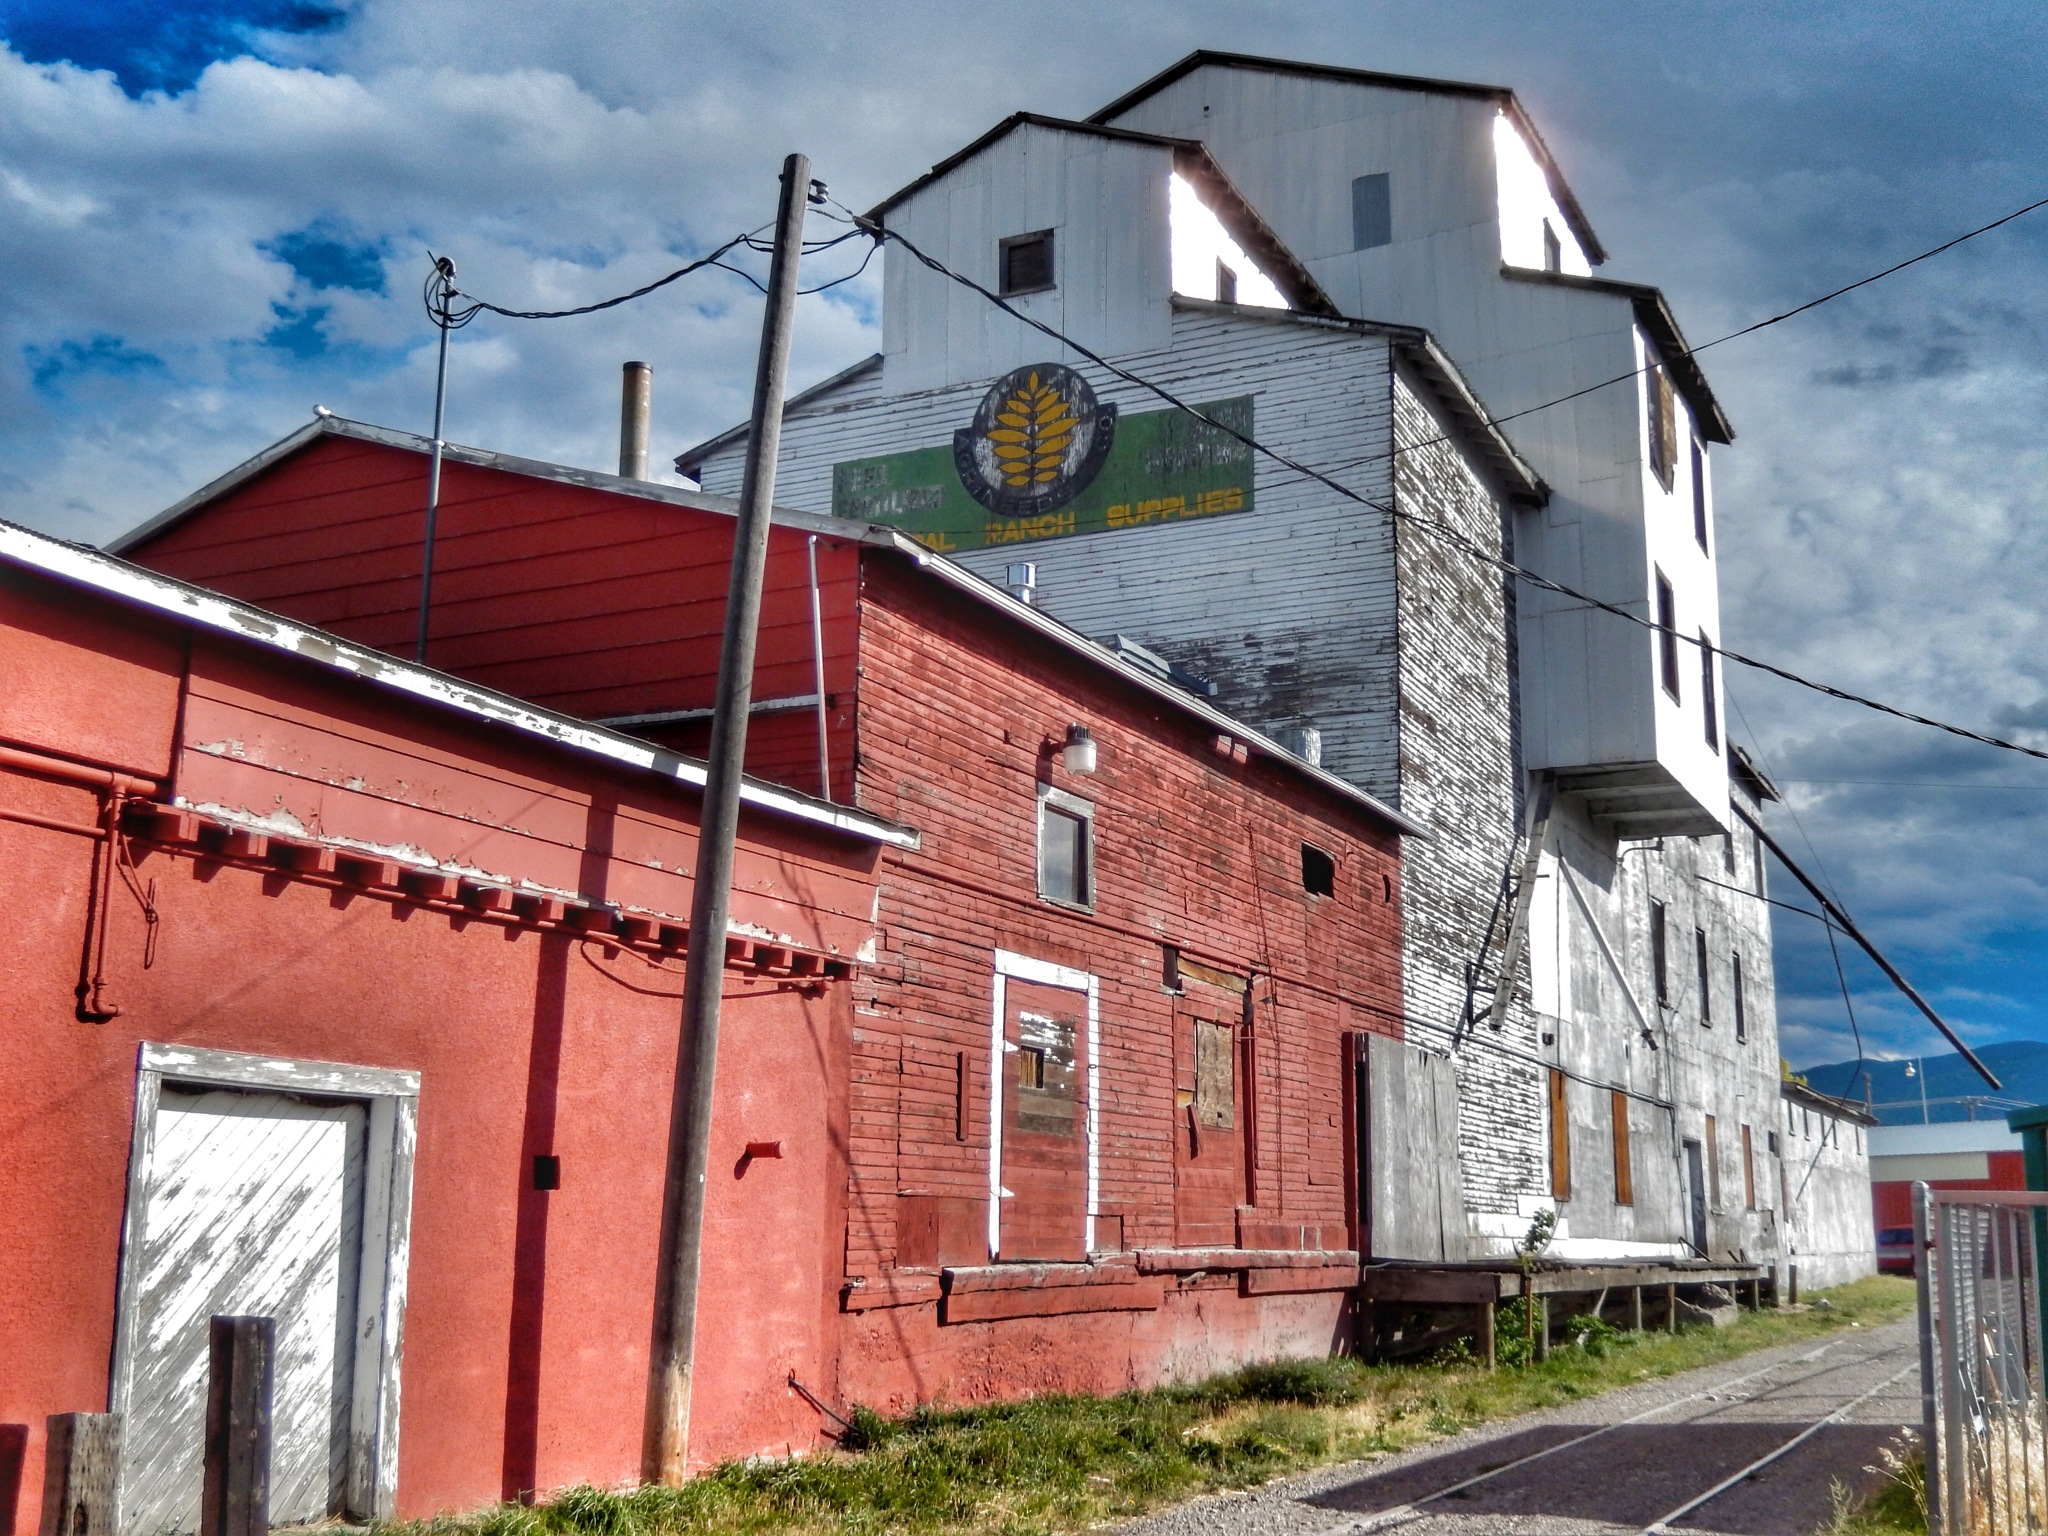 The old grain silo by Jackie06